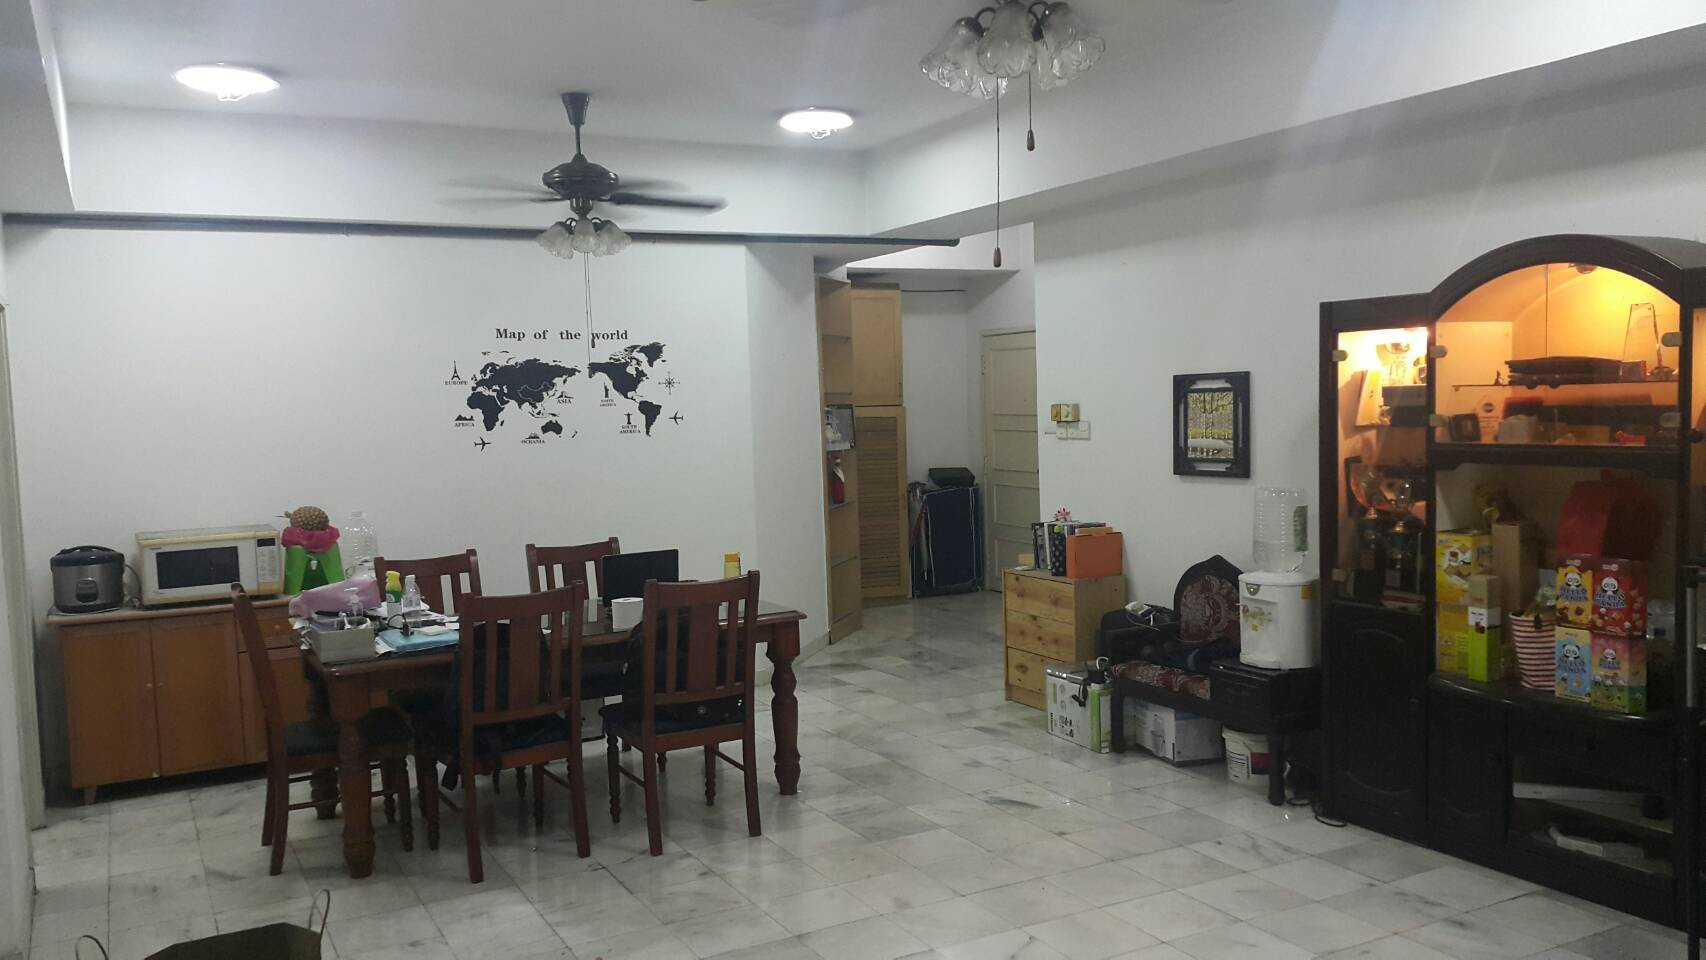 small-middle-room-rent-all-female-housemates-4a92f0b8e02c9a64a7fe91ded221b48f